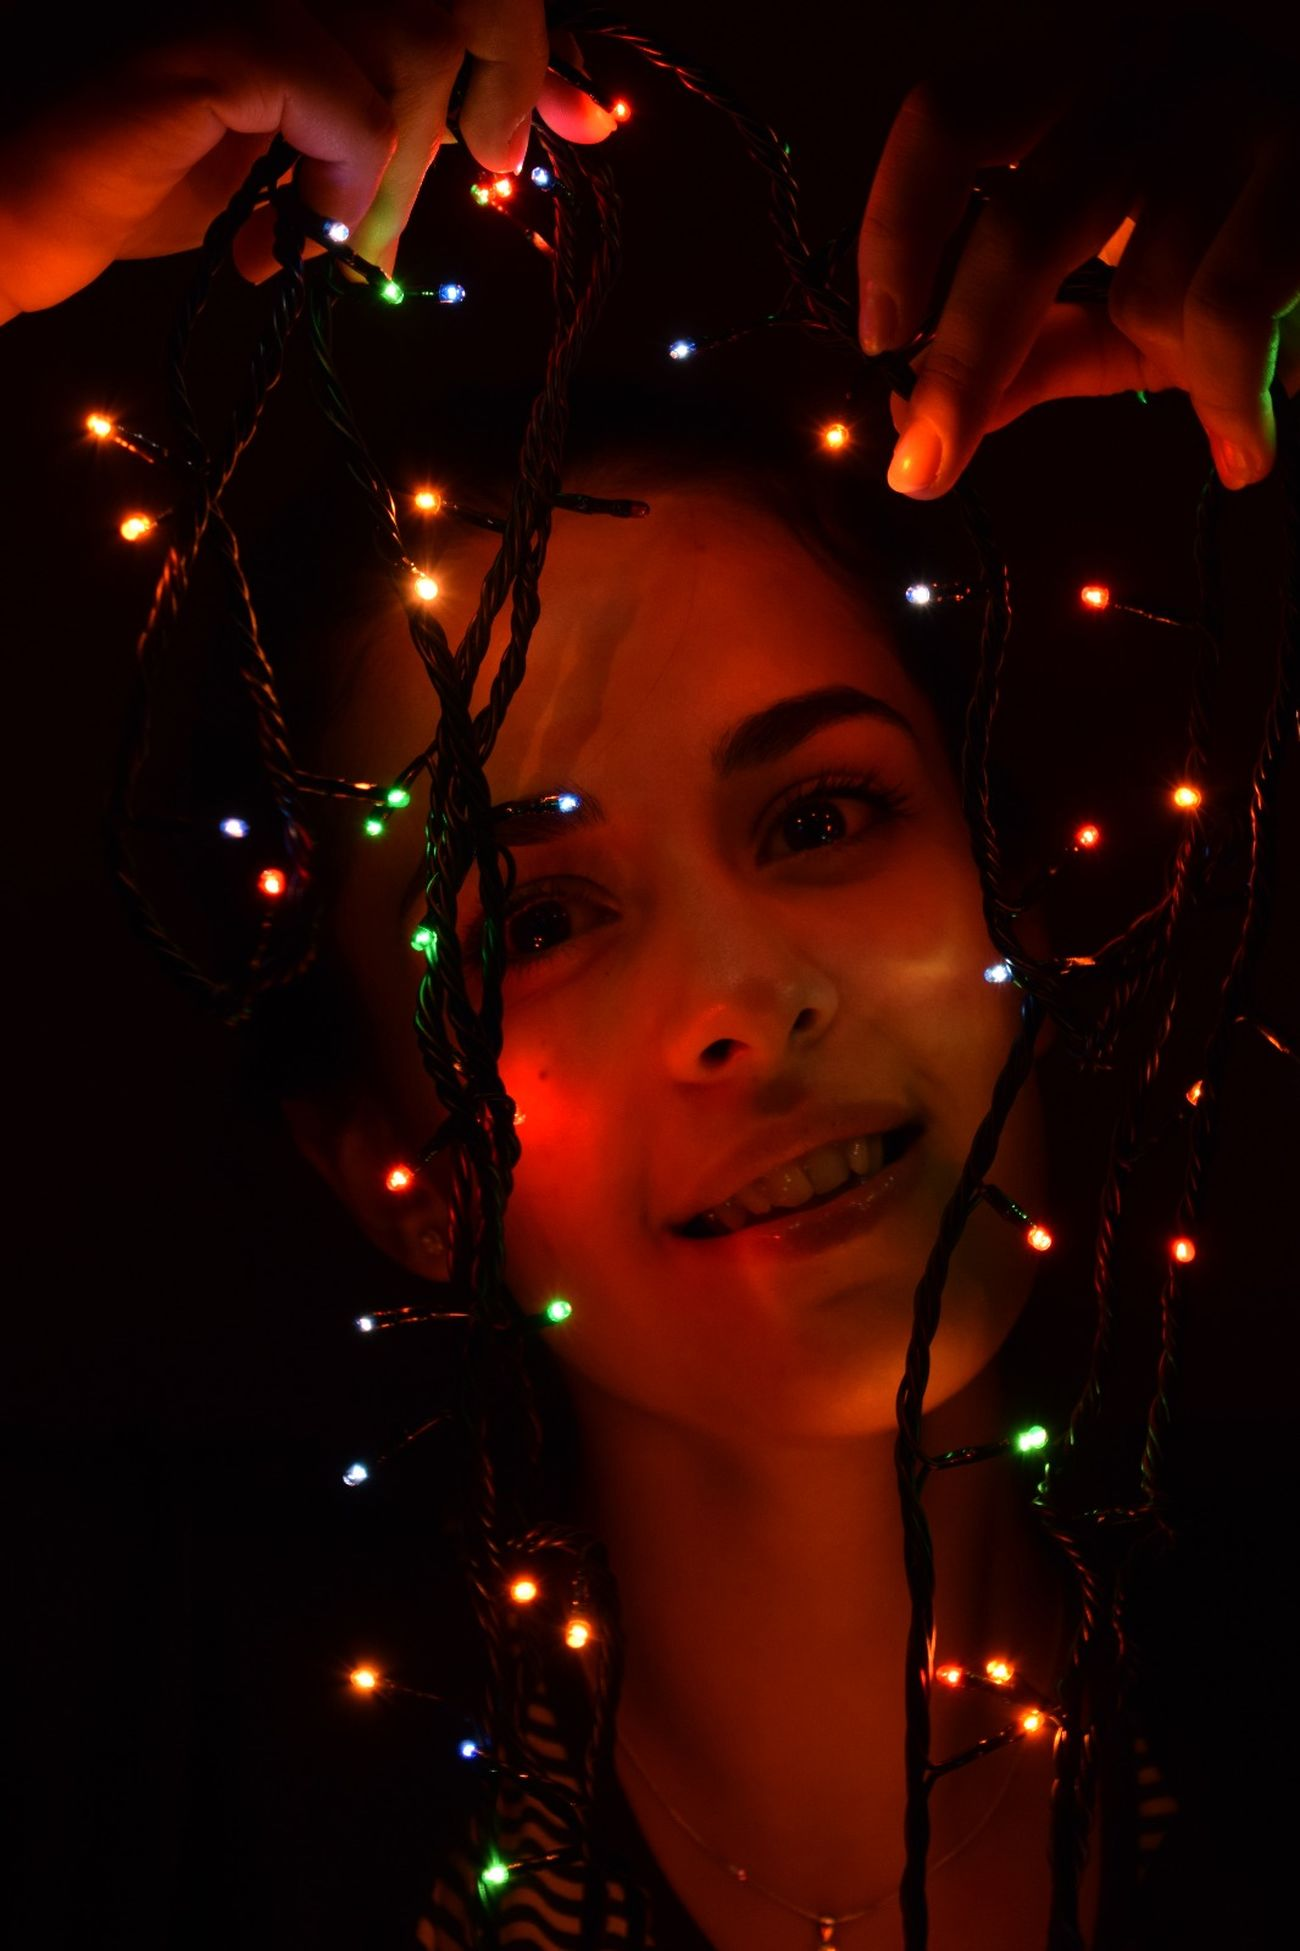 One Person Adults Only One Woman Only Only Women Women Illuminated Black Background One Young Woman Only Moments NIKON D5300 Cristmas Night Lights Cristmas Time♥ CRISTMAS💙 Ready For Christmas! !